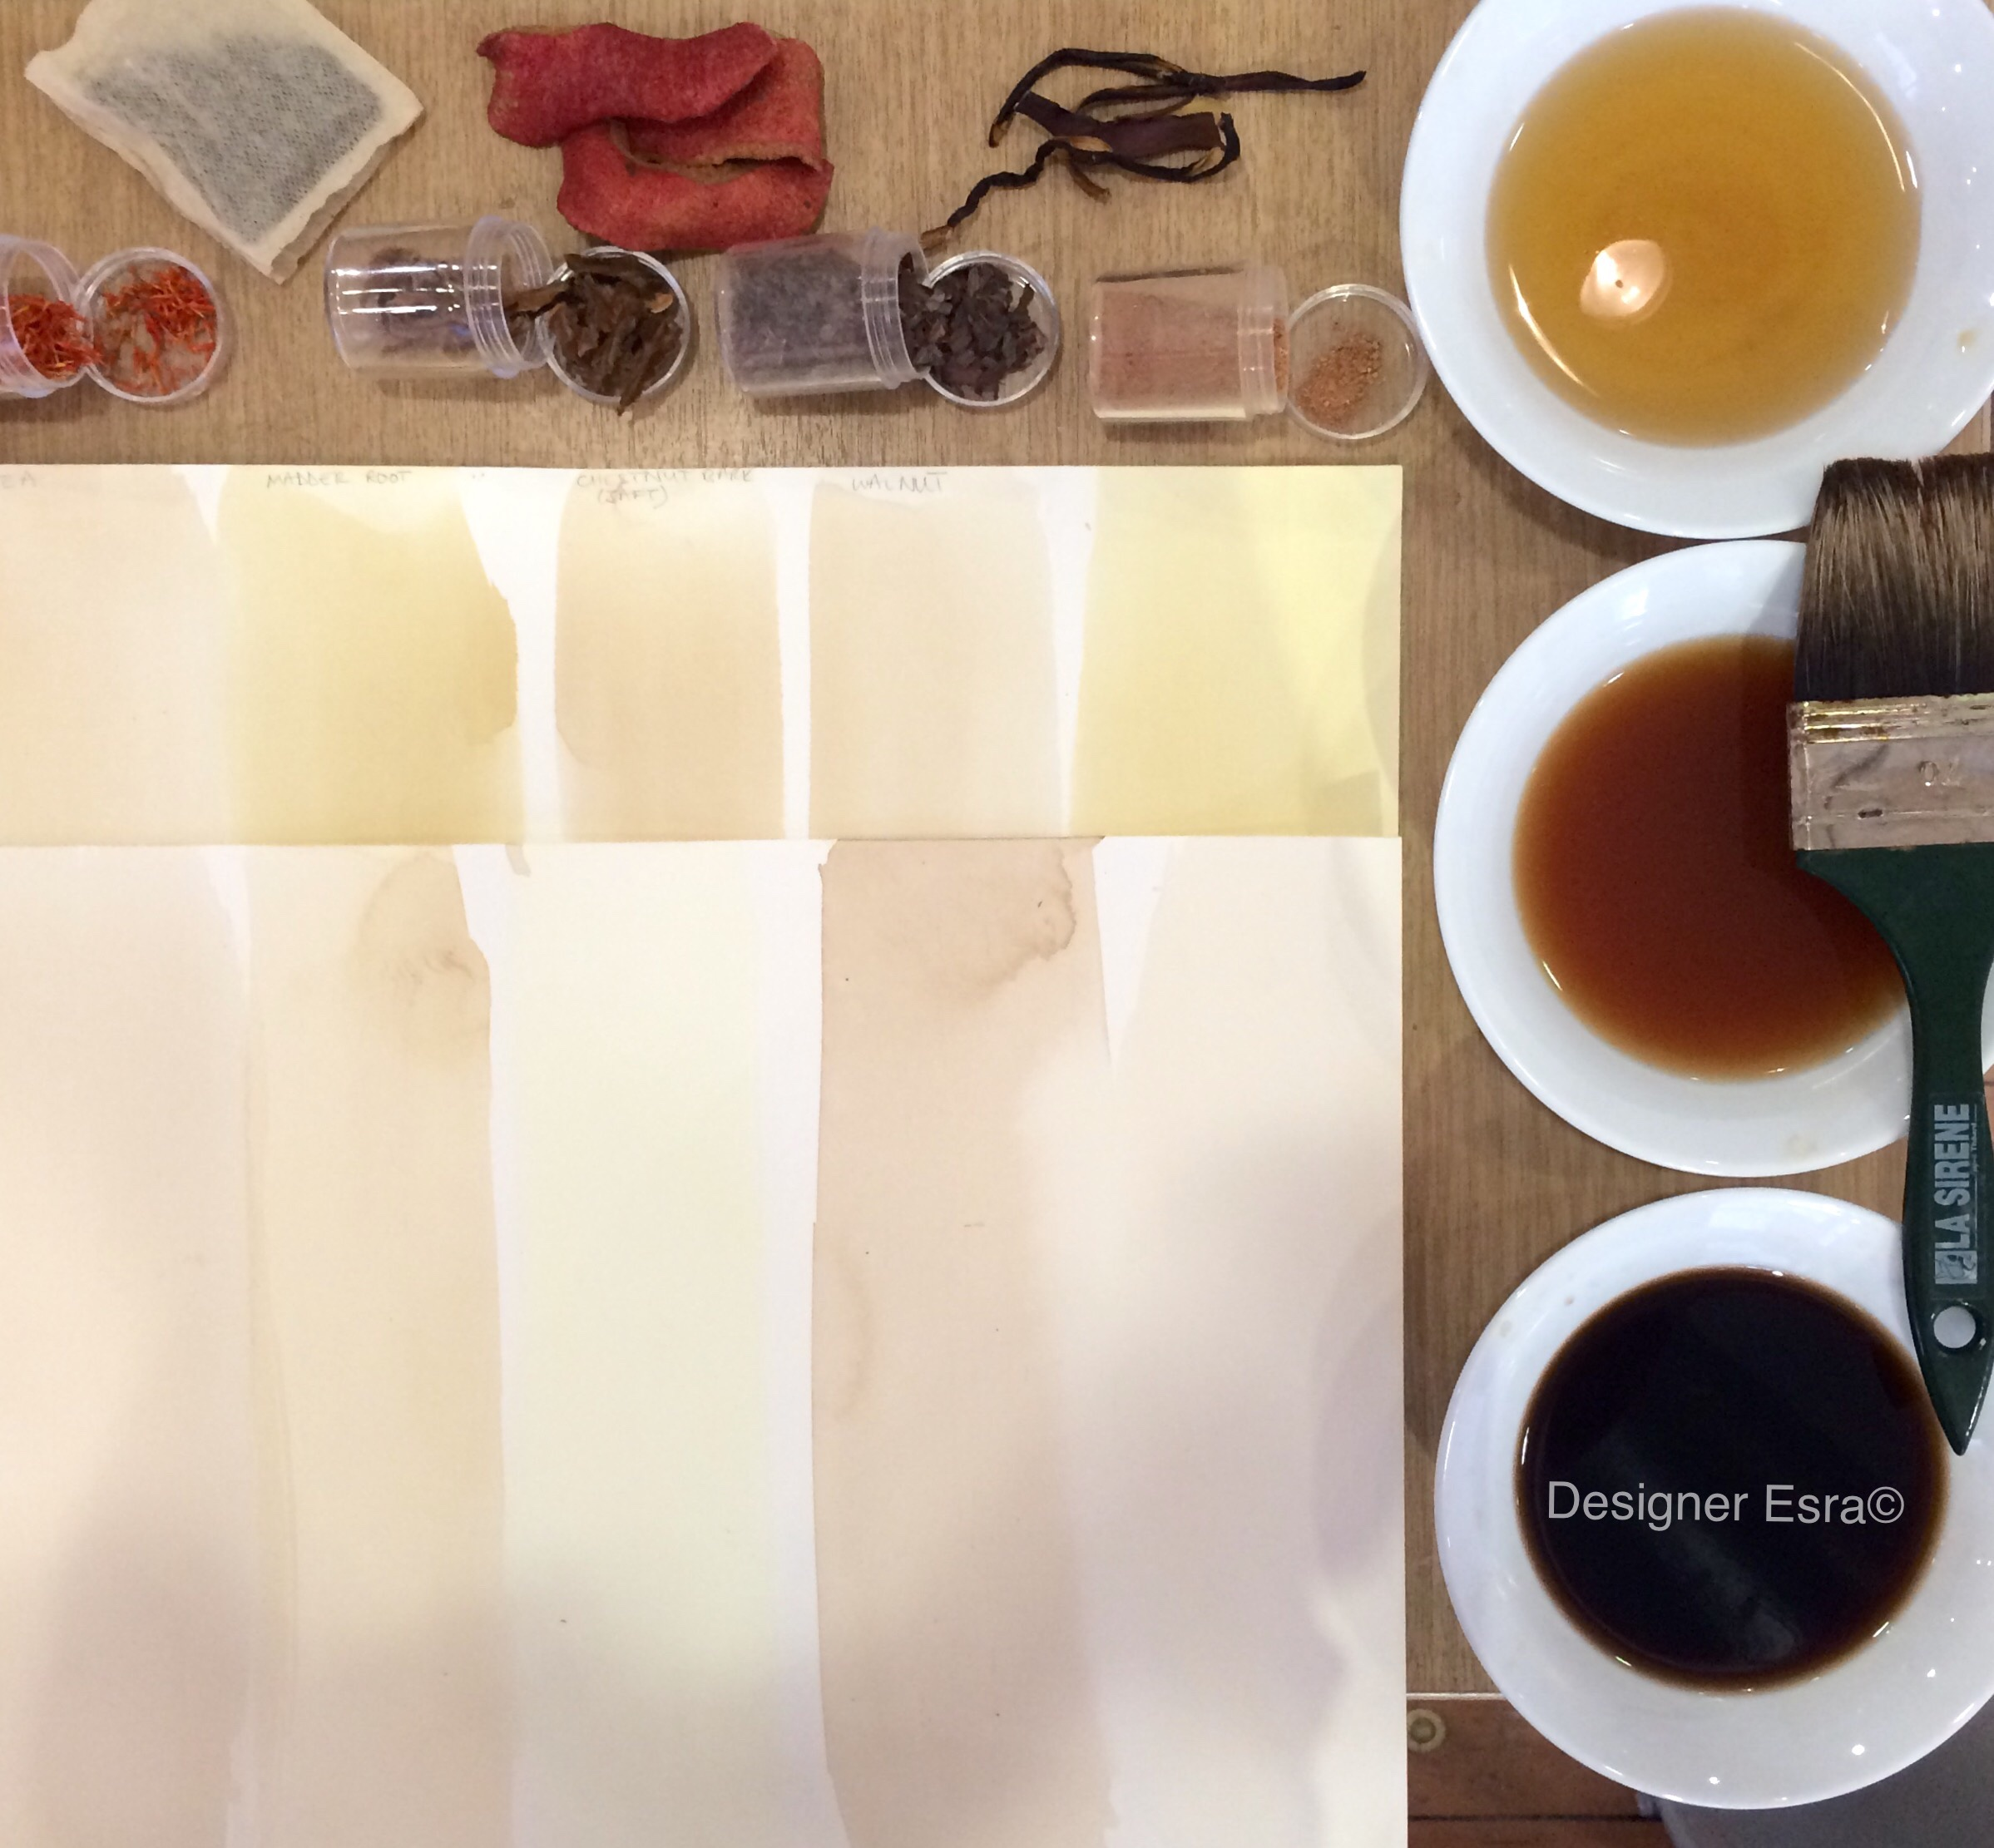 Staining Paper with tea and other natural colours